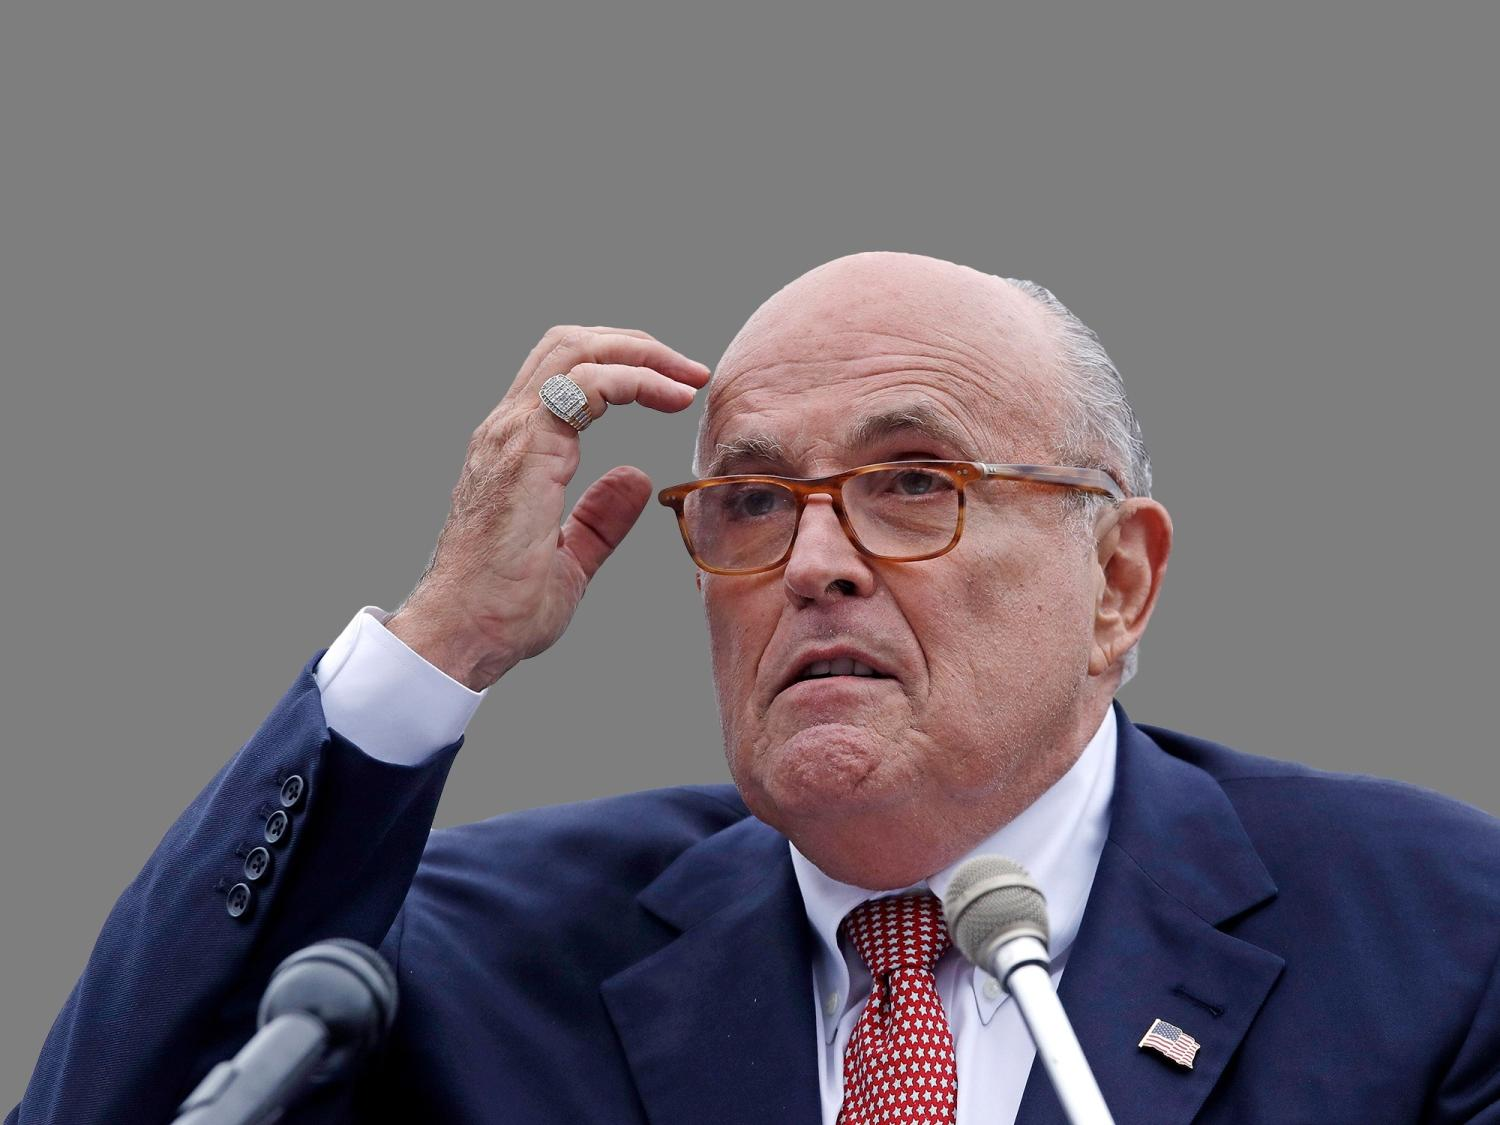 Prosecutors probe Giuliani's links to Ukrainian energy projects